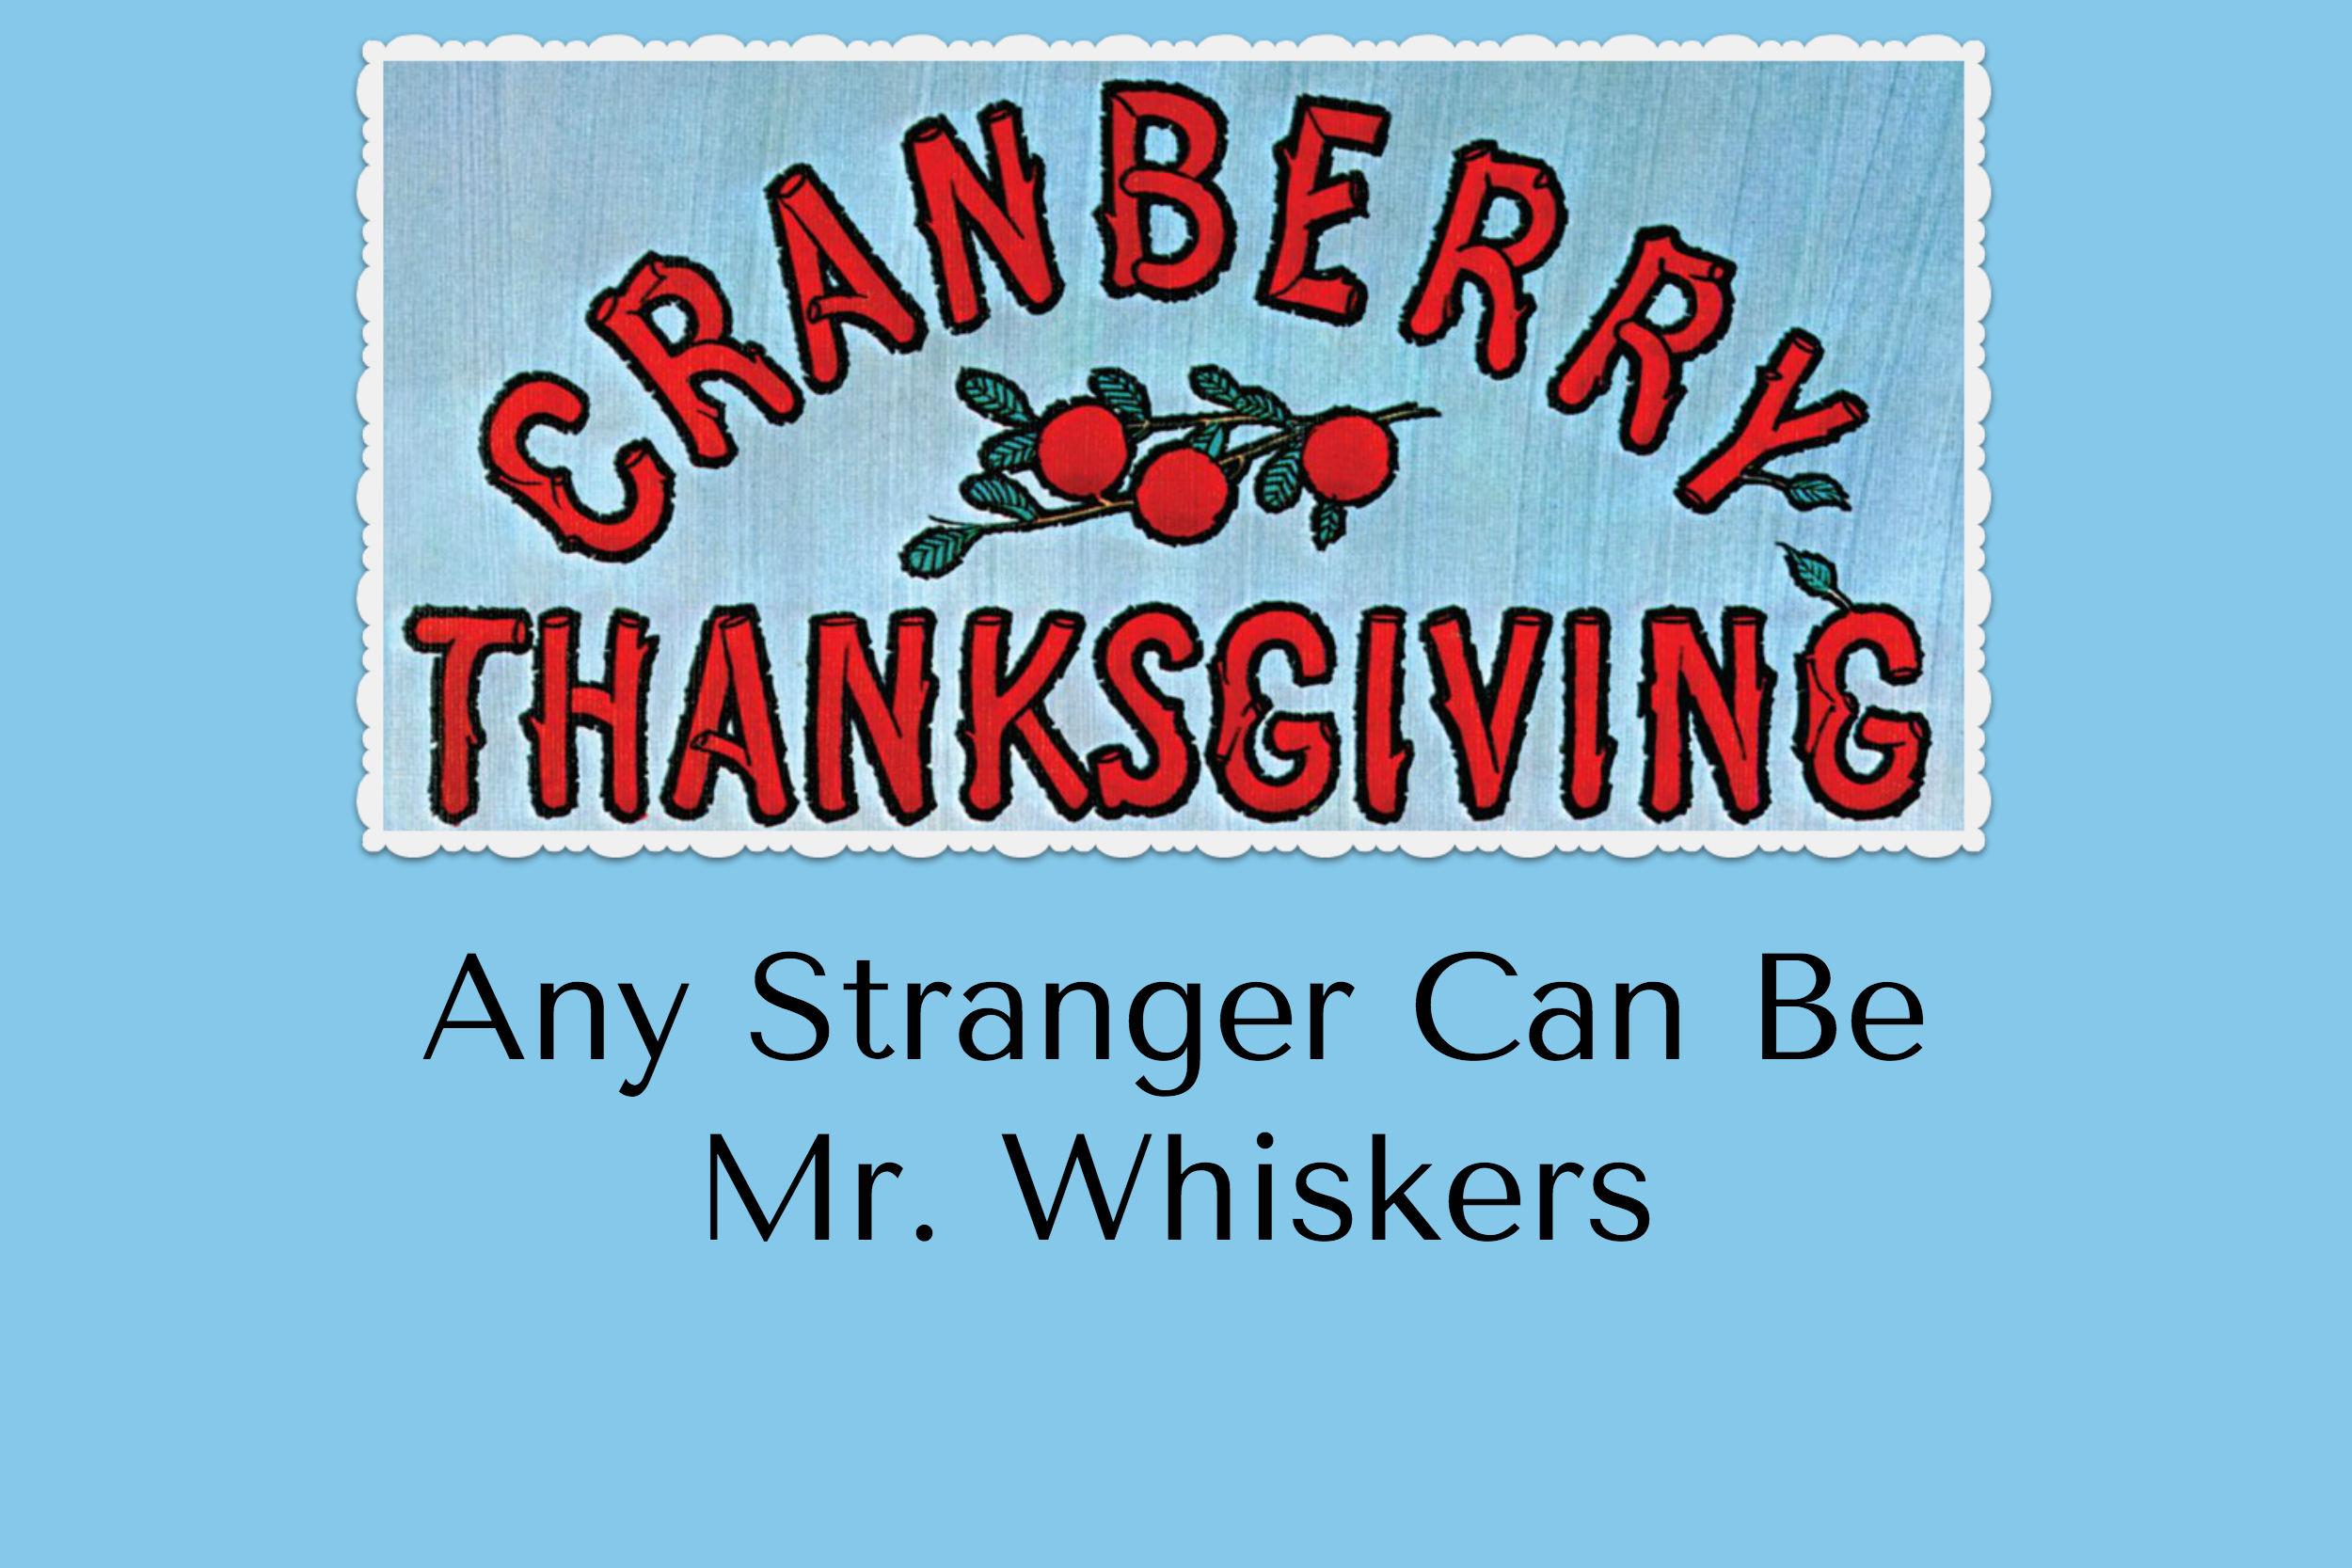 Cranberry-Thanksgiving-Any-Stranger-Mr-Whiskers.jpg